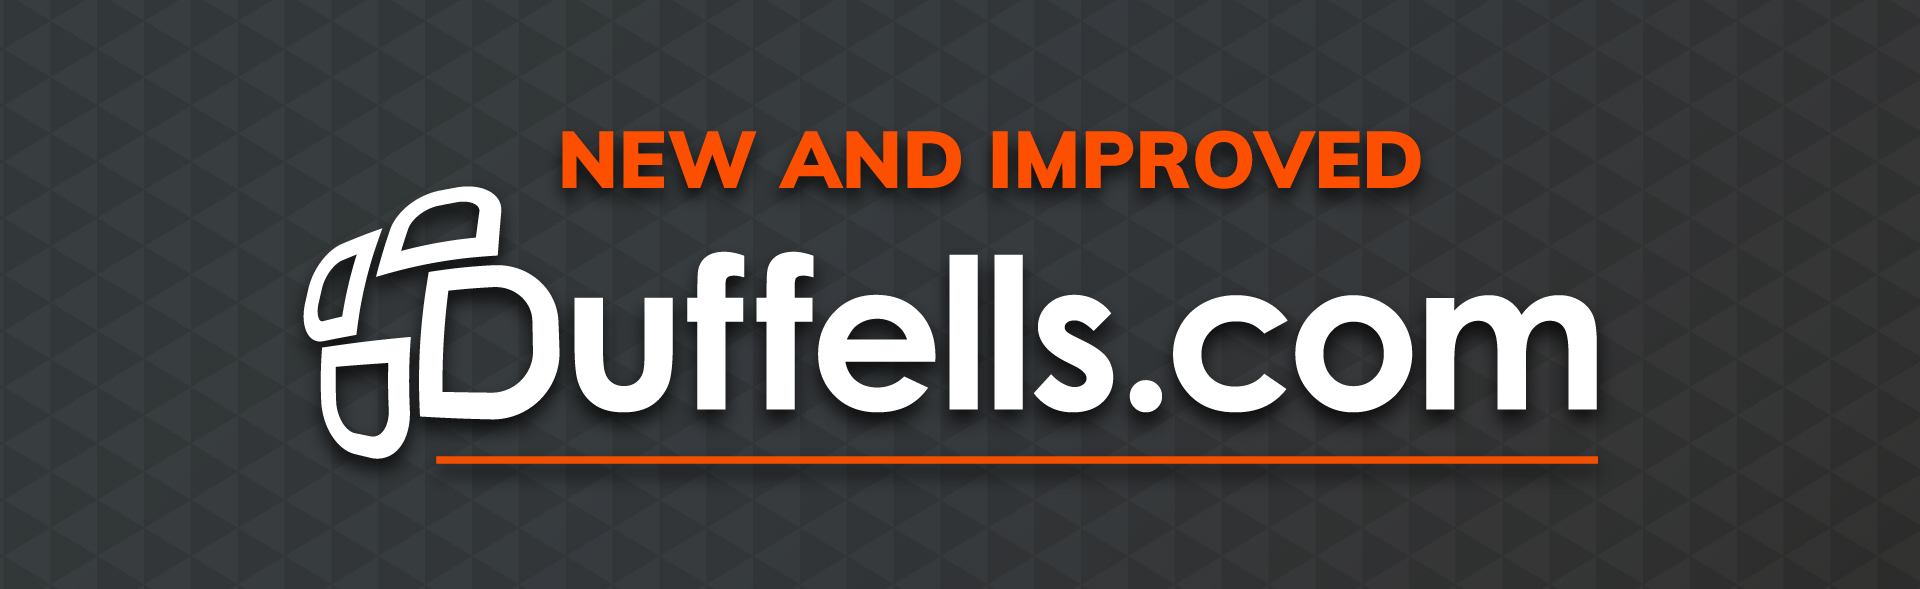 Duffells.com... we've made some improvements.